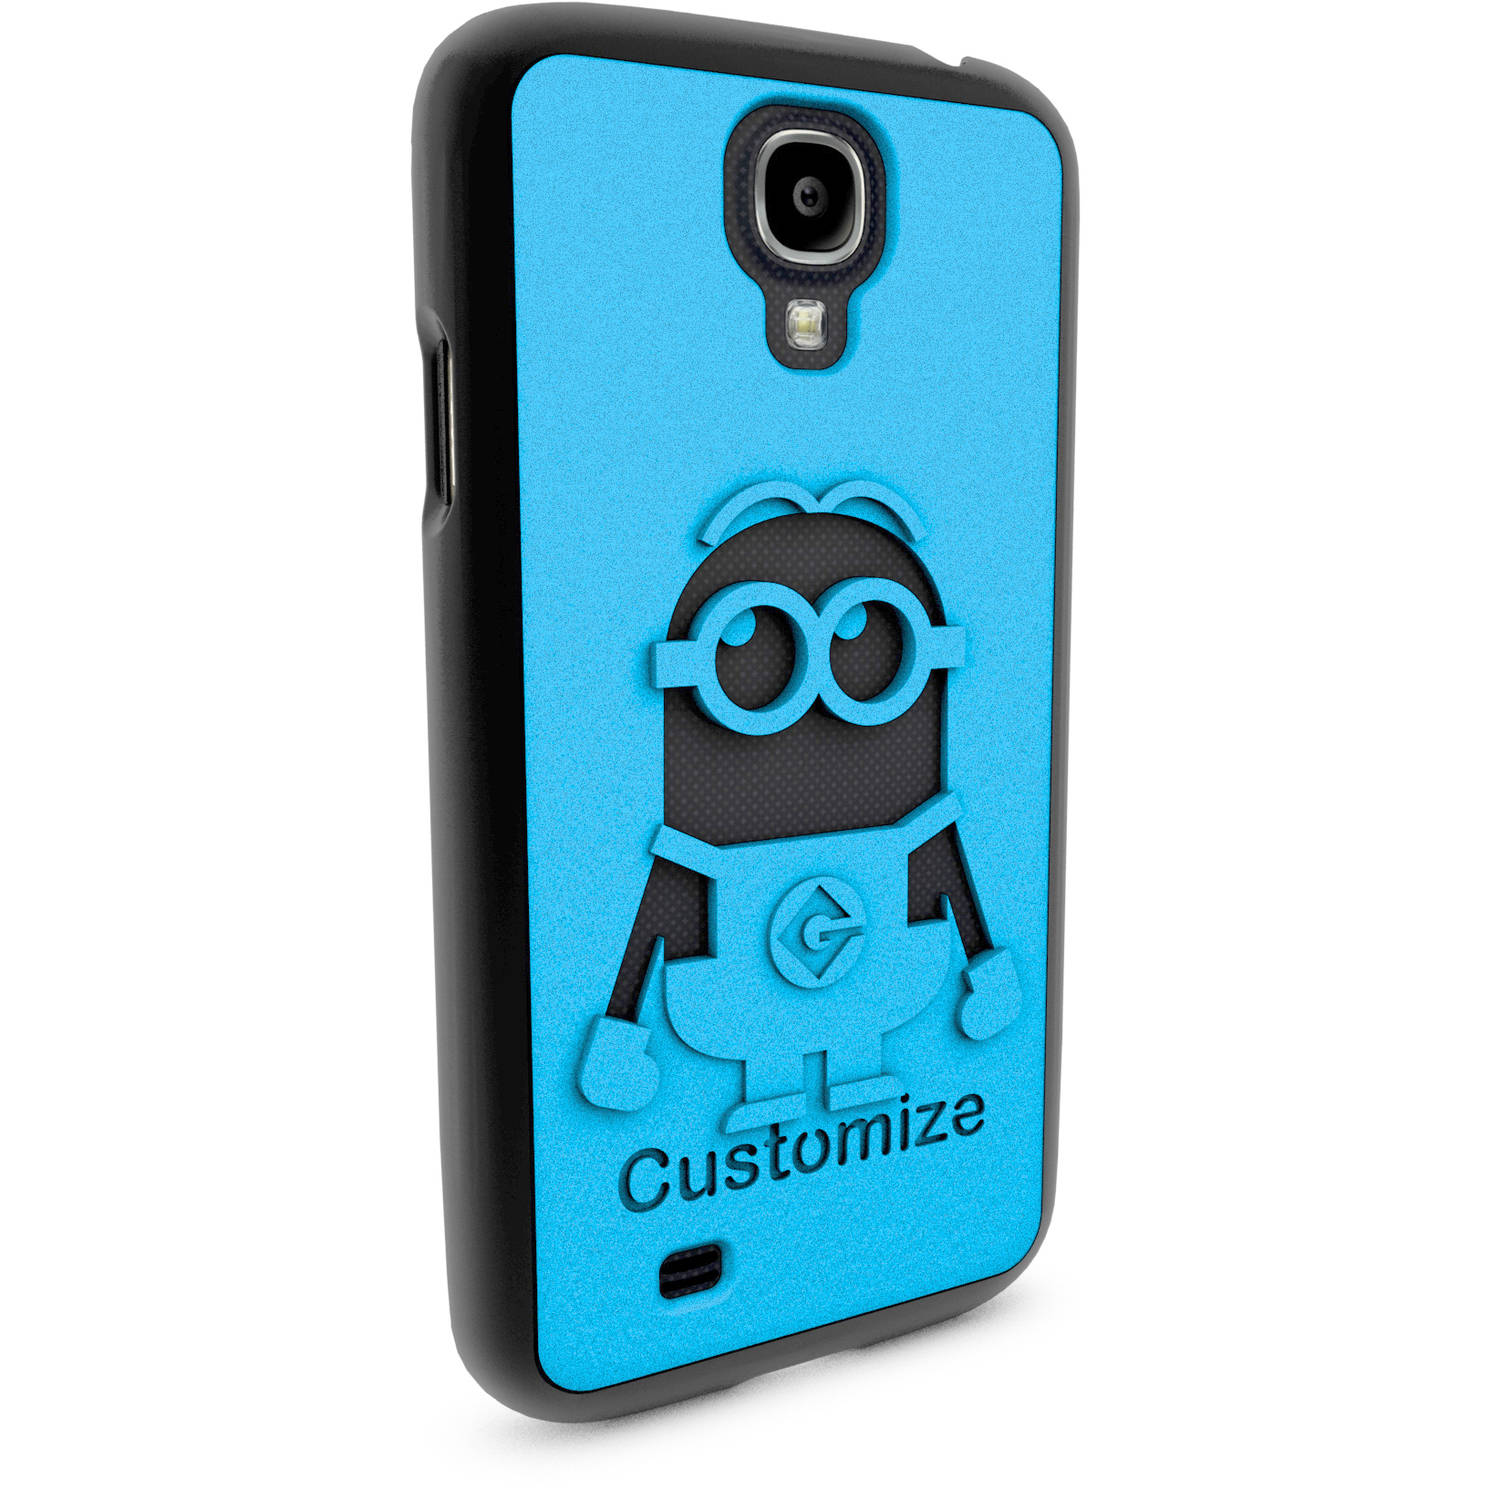 Samsung Galaxy S4 3D Printed Custom Phone Case - Despicable Me - Dave 2